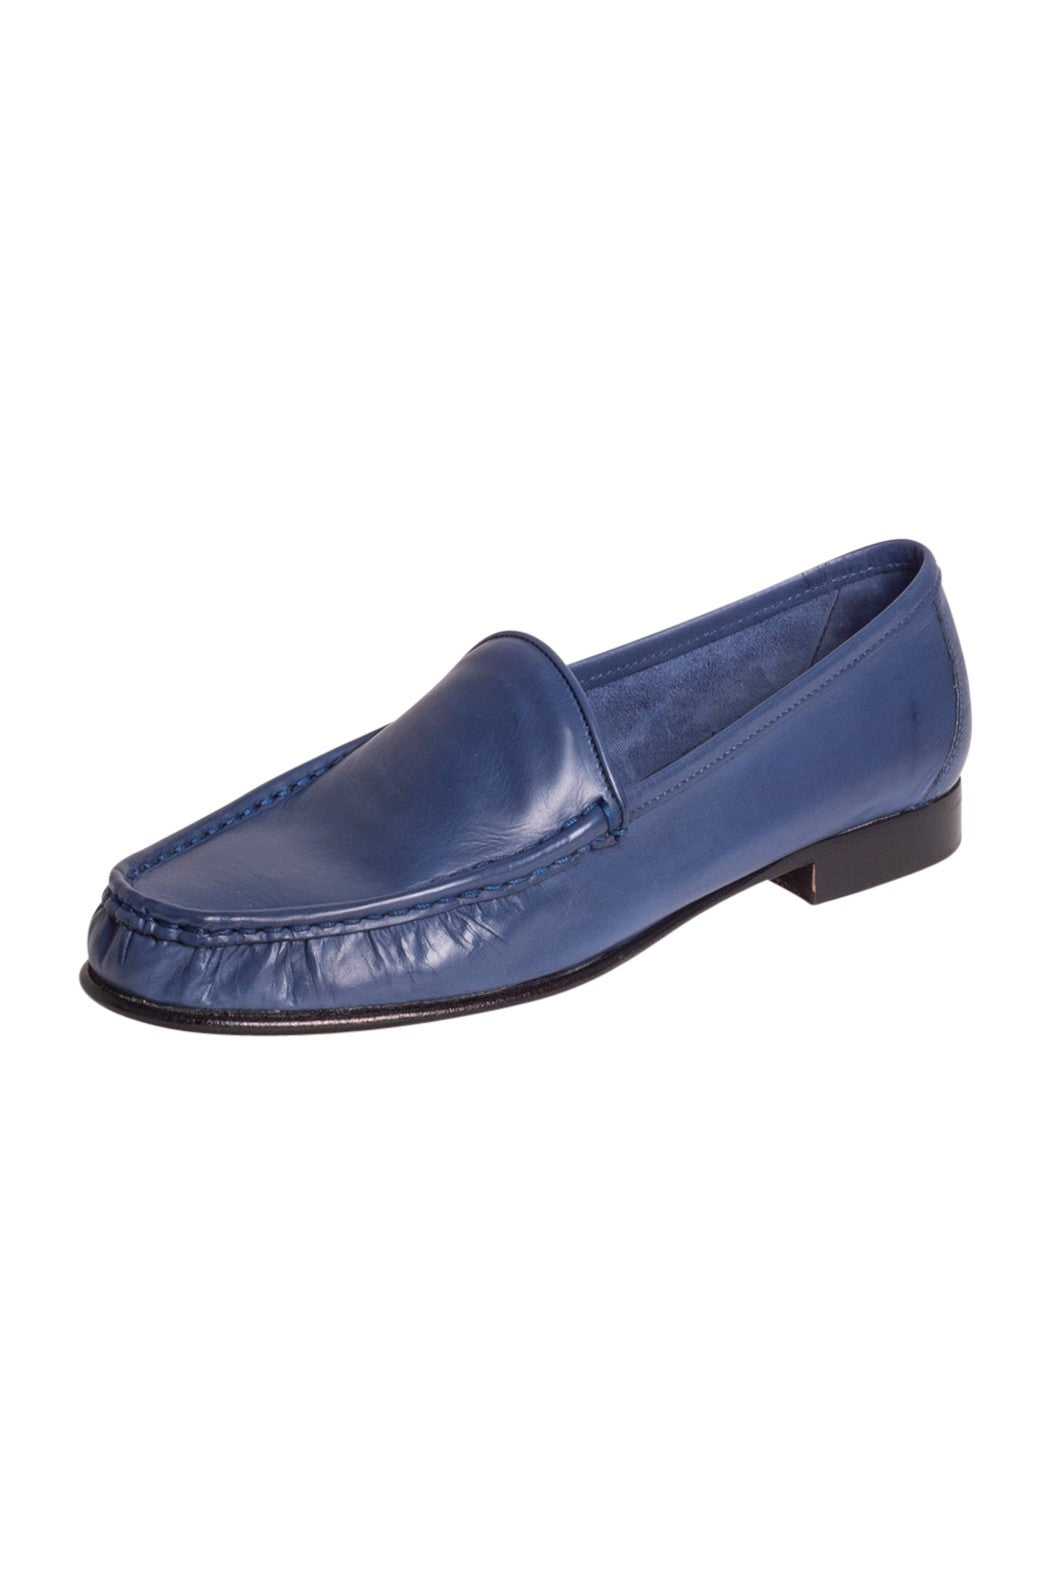 Blue Italian leather loafers with leather sole